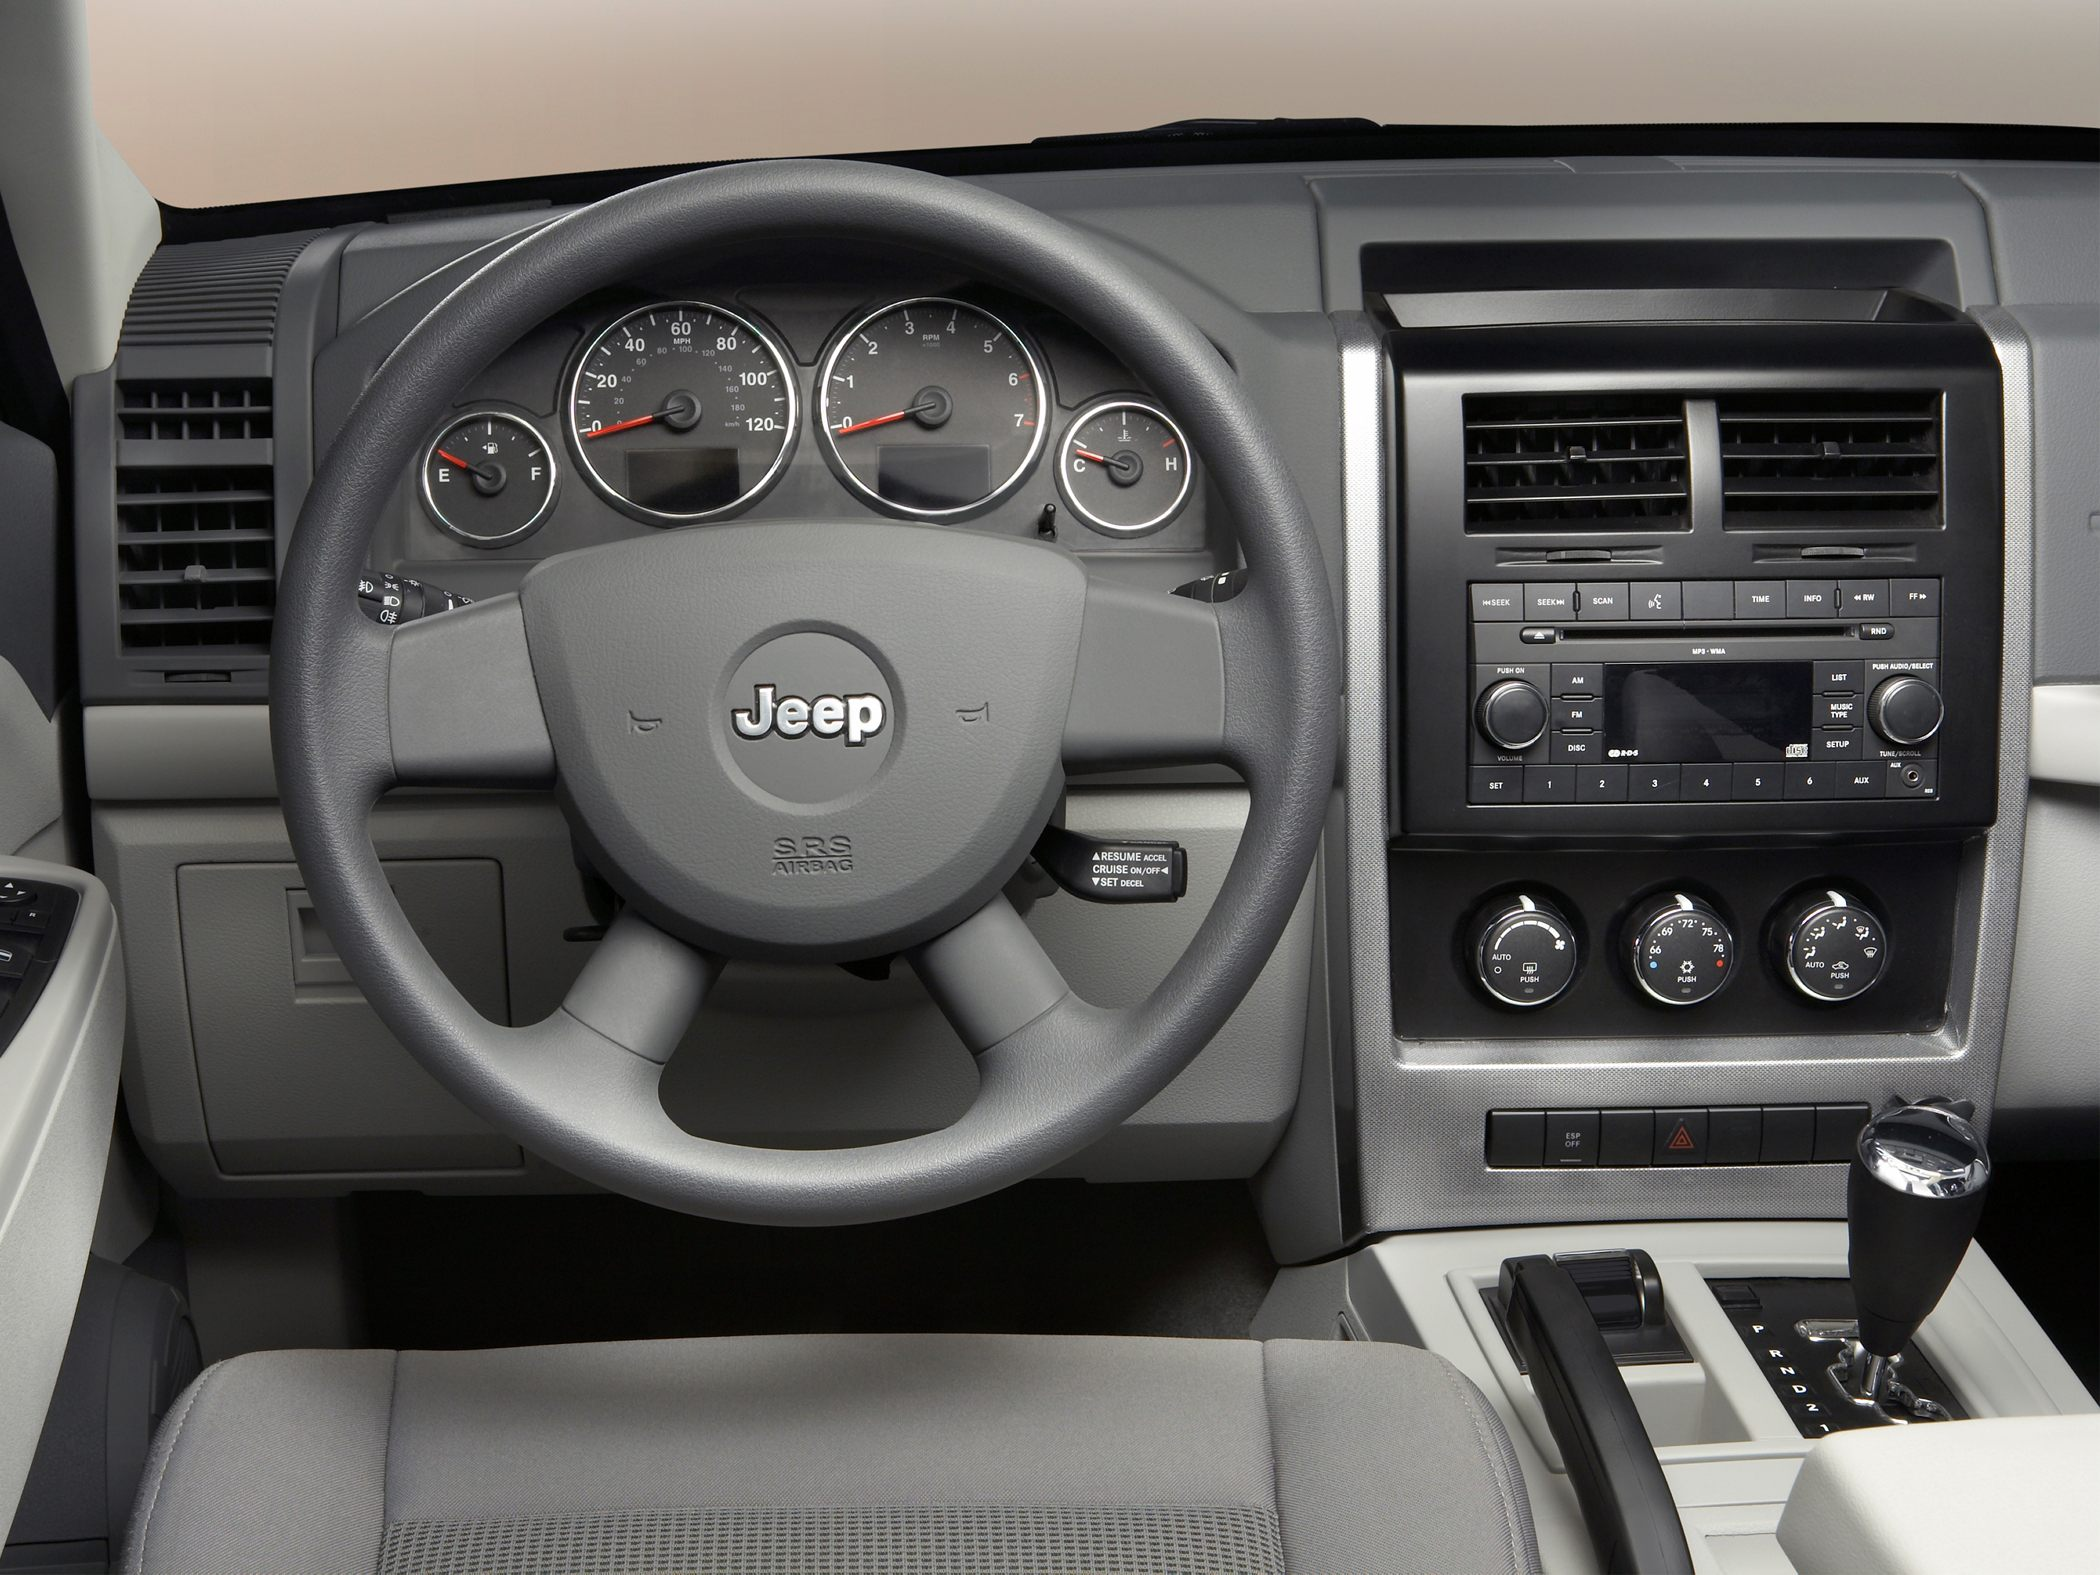 Jeep Liberty interior #4